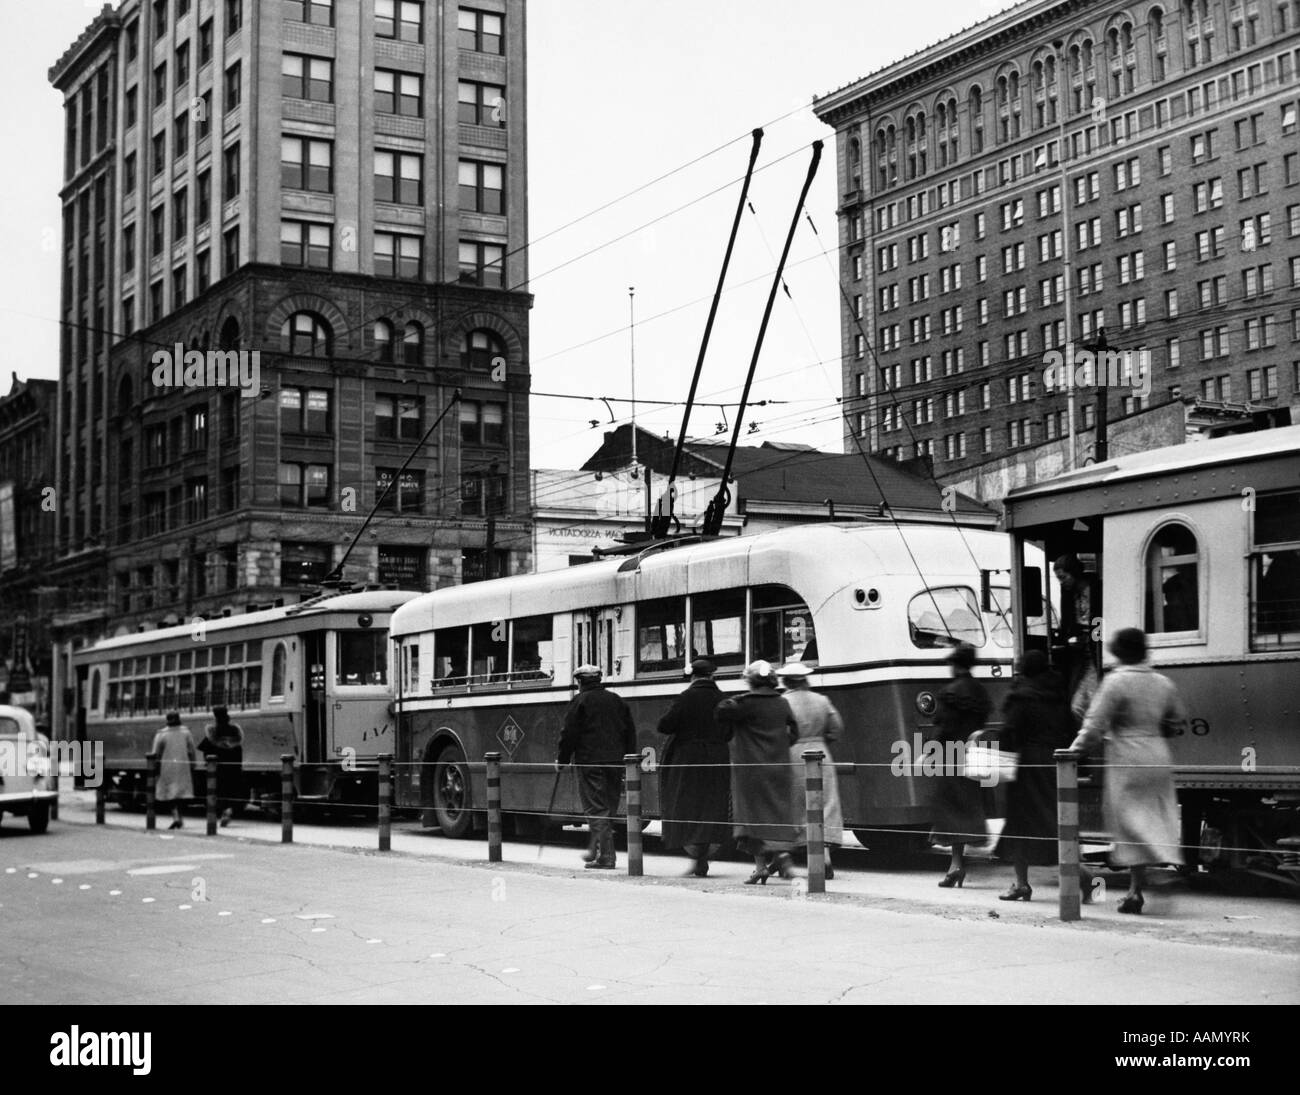 1930s 1940s LINE MODERN TROLLEY BUS CARS MEN WOMEN COMMUTERS CITY TRANSPORTATION DAYTON OHIO - Stock Image